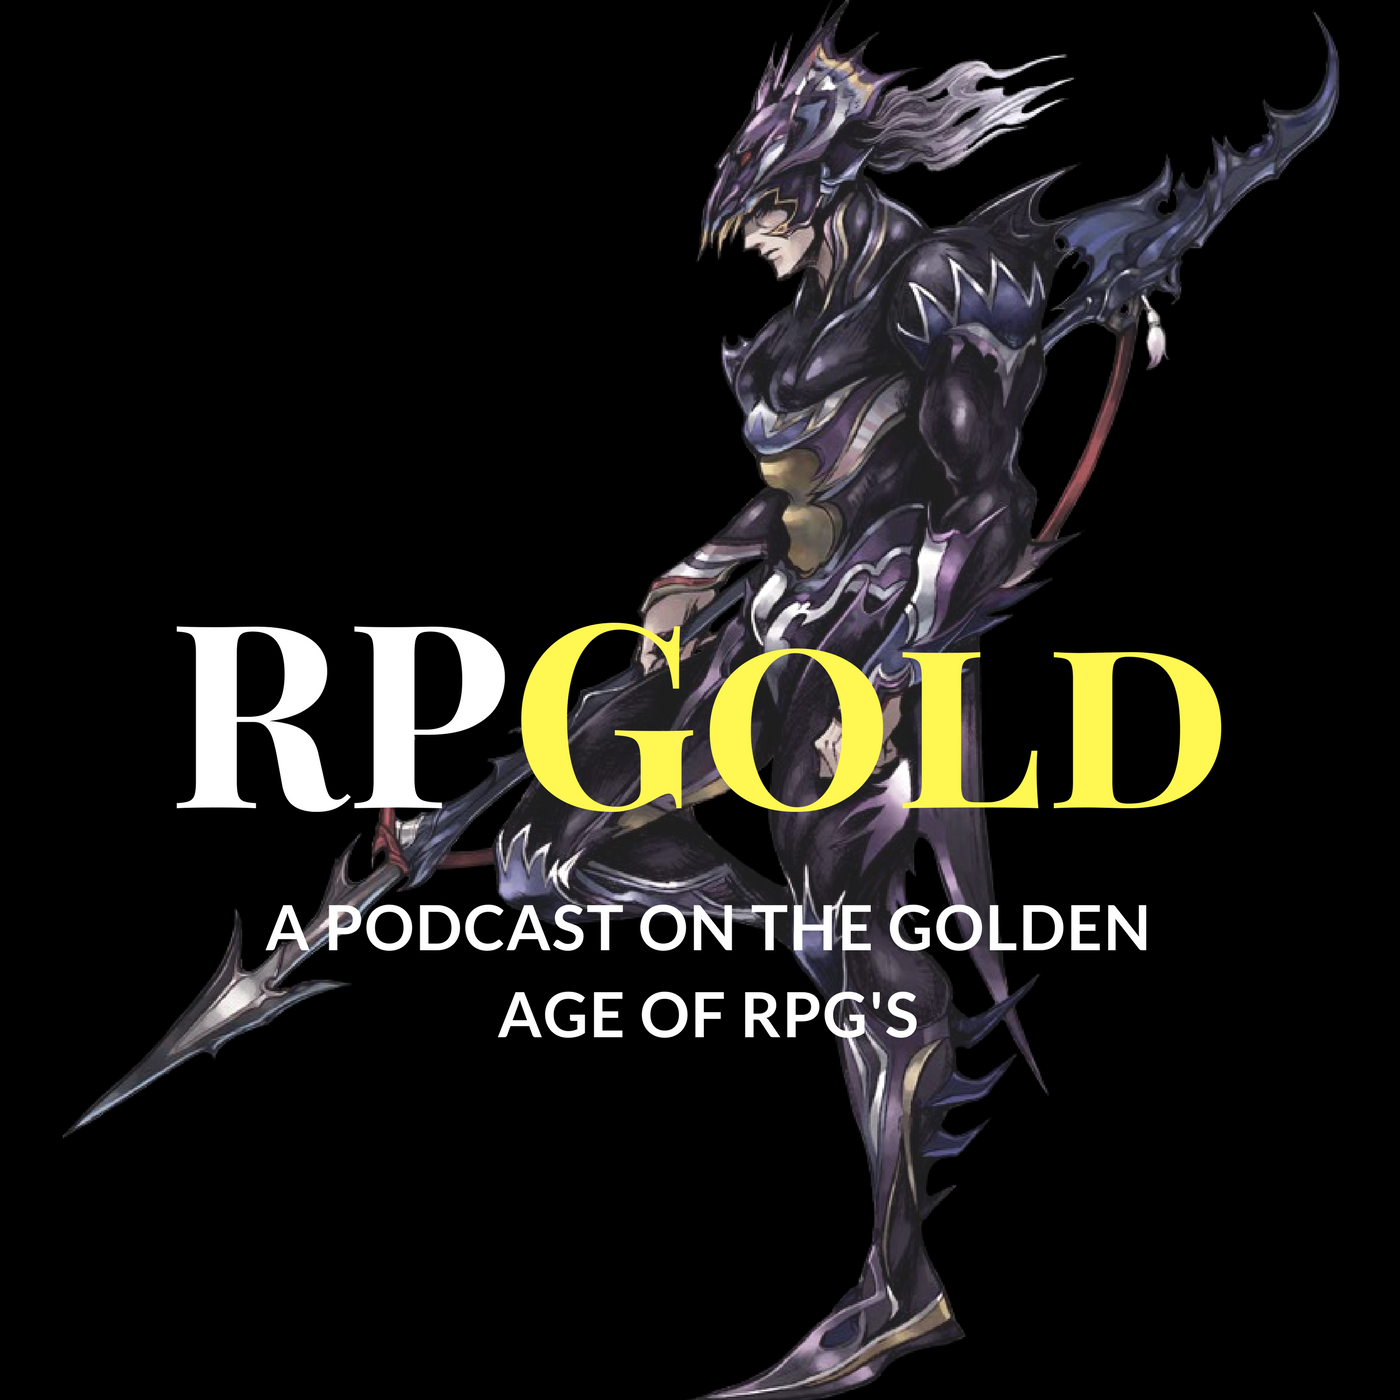 RPGold: A podcast discussing the golden age of RPGs